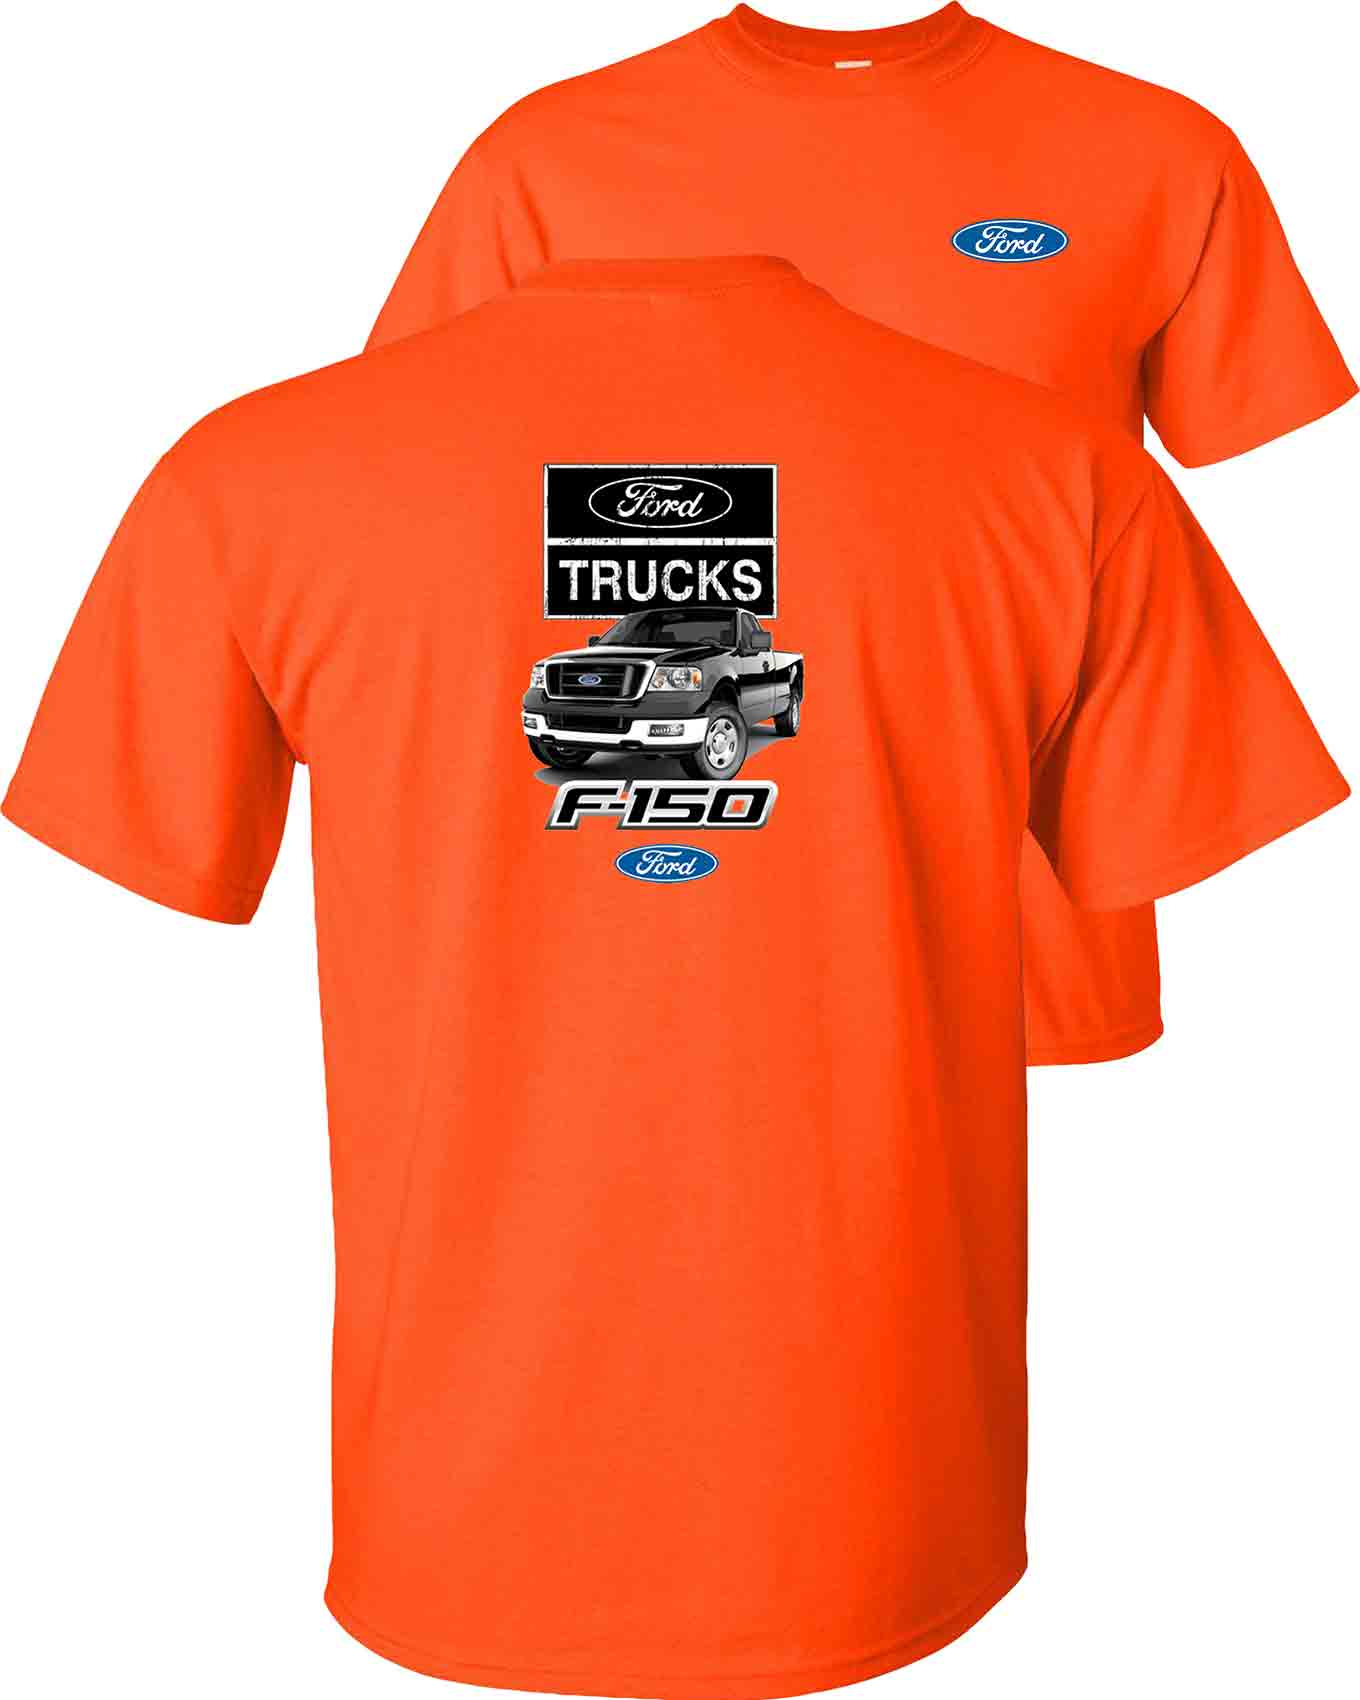 ford-trucks-f-150-t-shirt-orange1.jpg